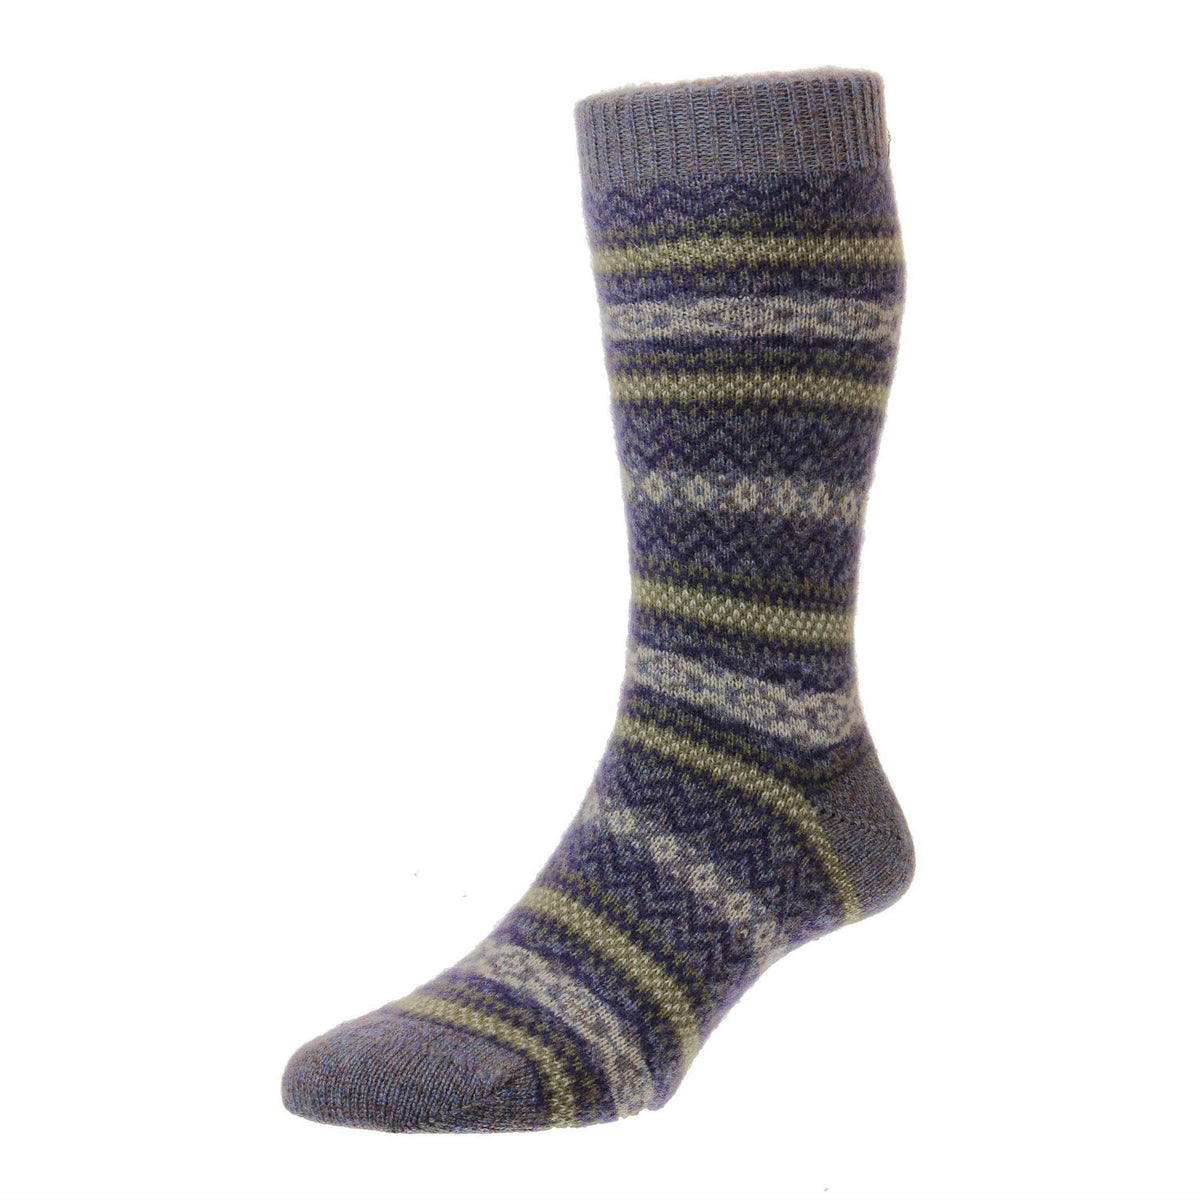 Heather Marl | Mens Cashmere Socks | Made in England | Fairisle Sock | buy now at The Cashmere Choice London